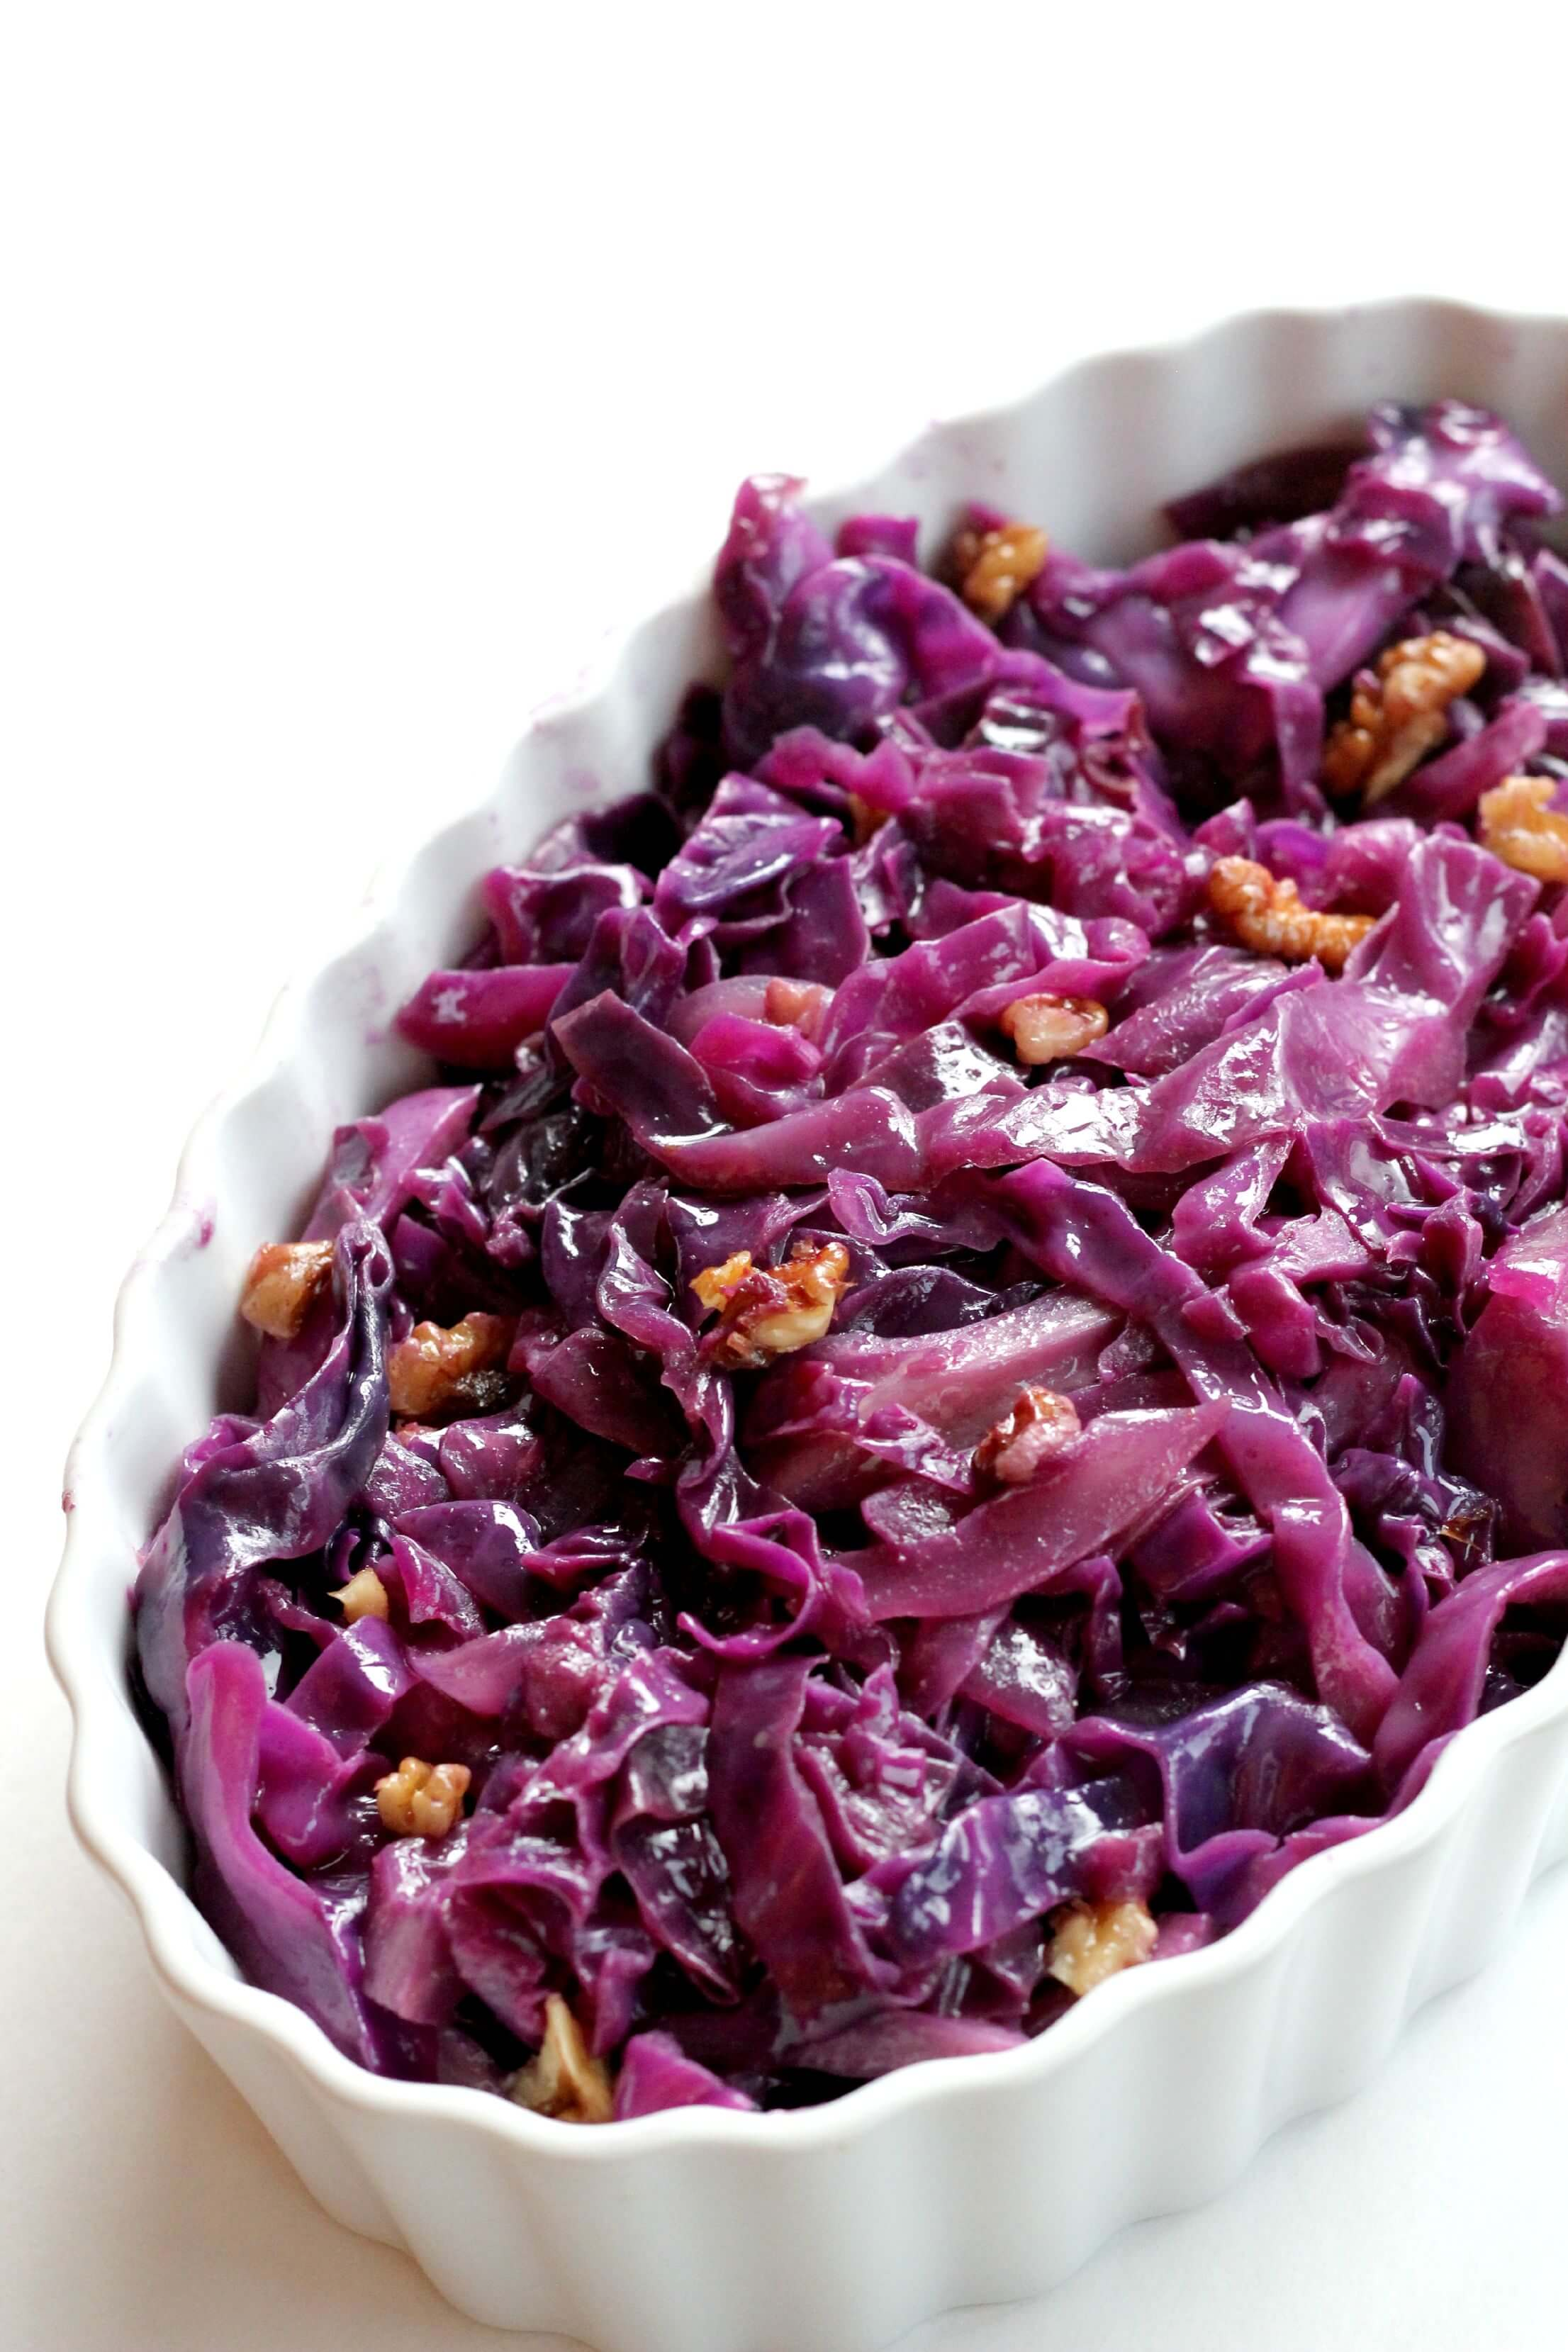 Braised Red Cabbage with Walnuts